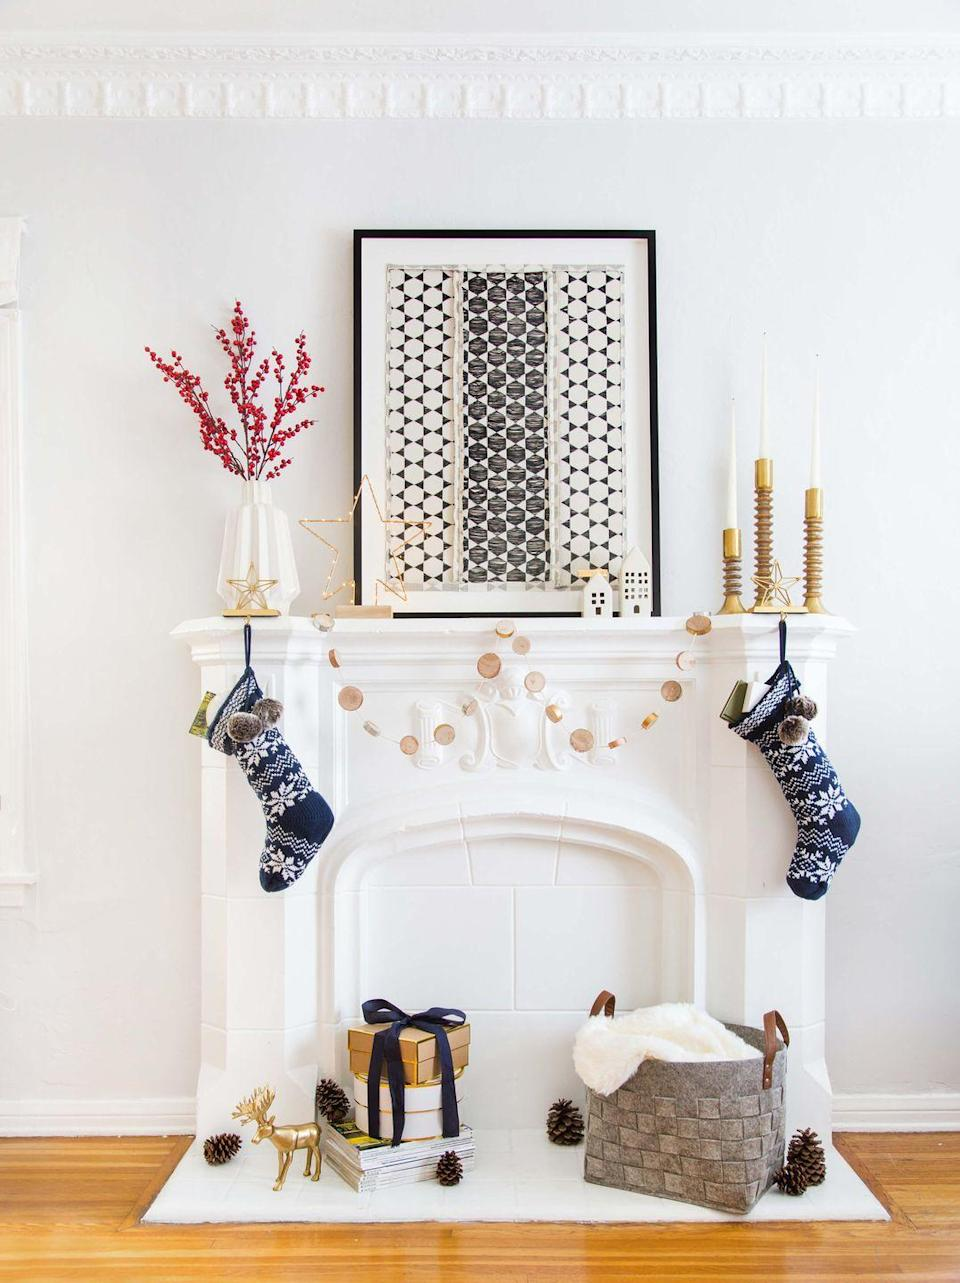 "<p>You don't have to stick to red and green for a festive mantel display. Keep your palette all white, then add in metallic accents. Gold feels celebratory, but still cool enough to not cramp your normal decor style. </p><p>See more at <a href=""https://stylebyemilyhenderson.com/blog/home-ginny-christmas"" rel=""nofollow noopener"" target=""_blank"" data-ylk=""slk:Emily Henderson"" class=""link rapid-noclick-resp"">Emily Henderson</a>.</p>"